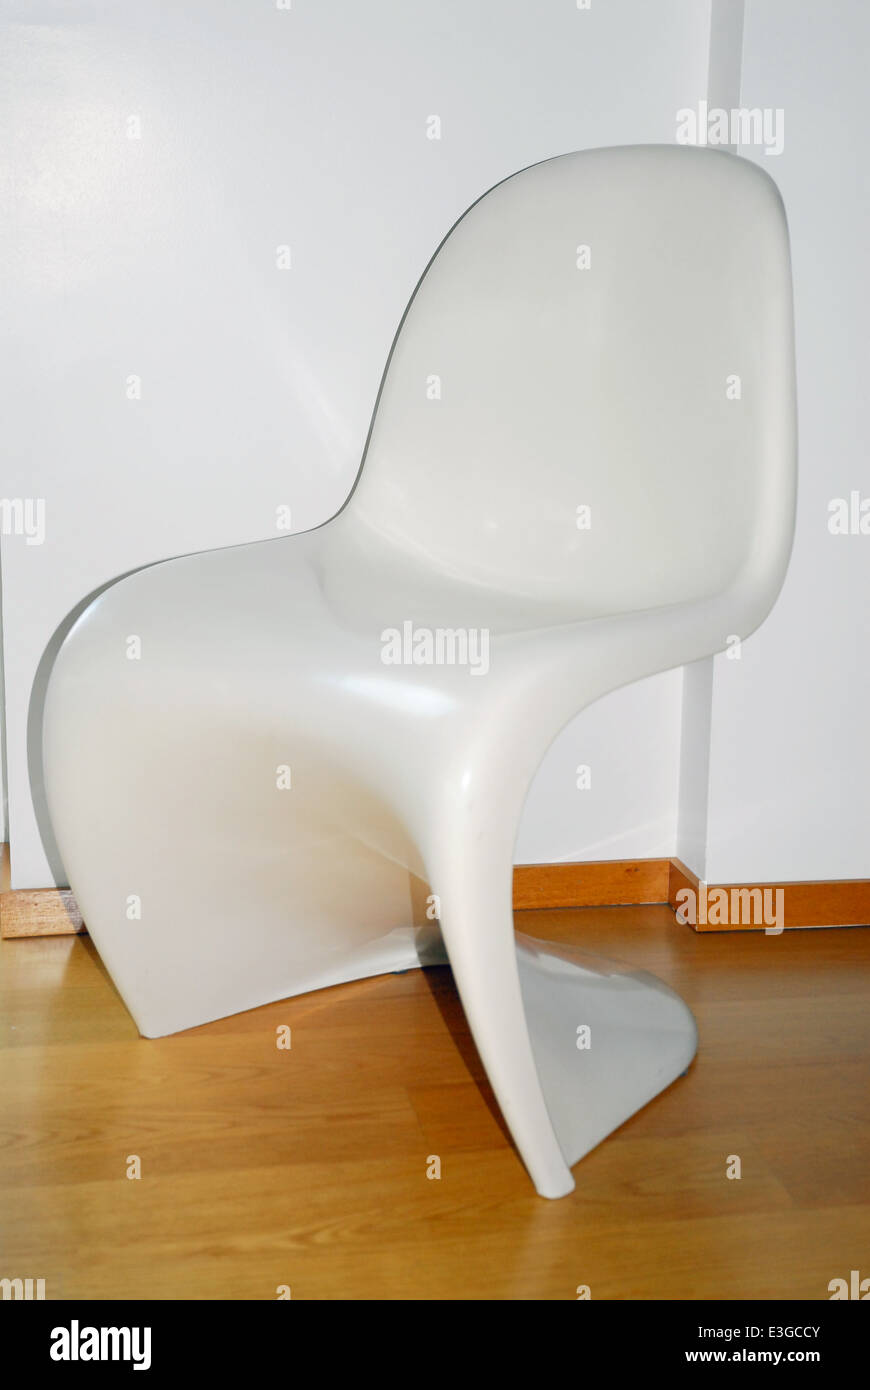 Silla Panton Blanca Panton Chair Imágenes De Stock Panton Chair Fotos De Stock Alamy